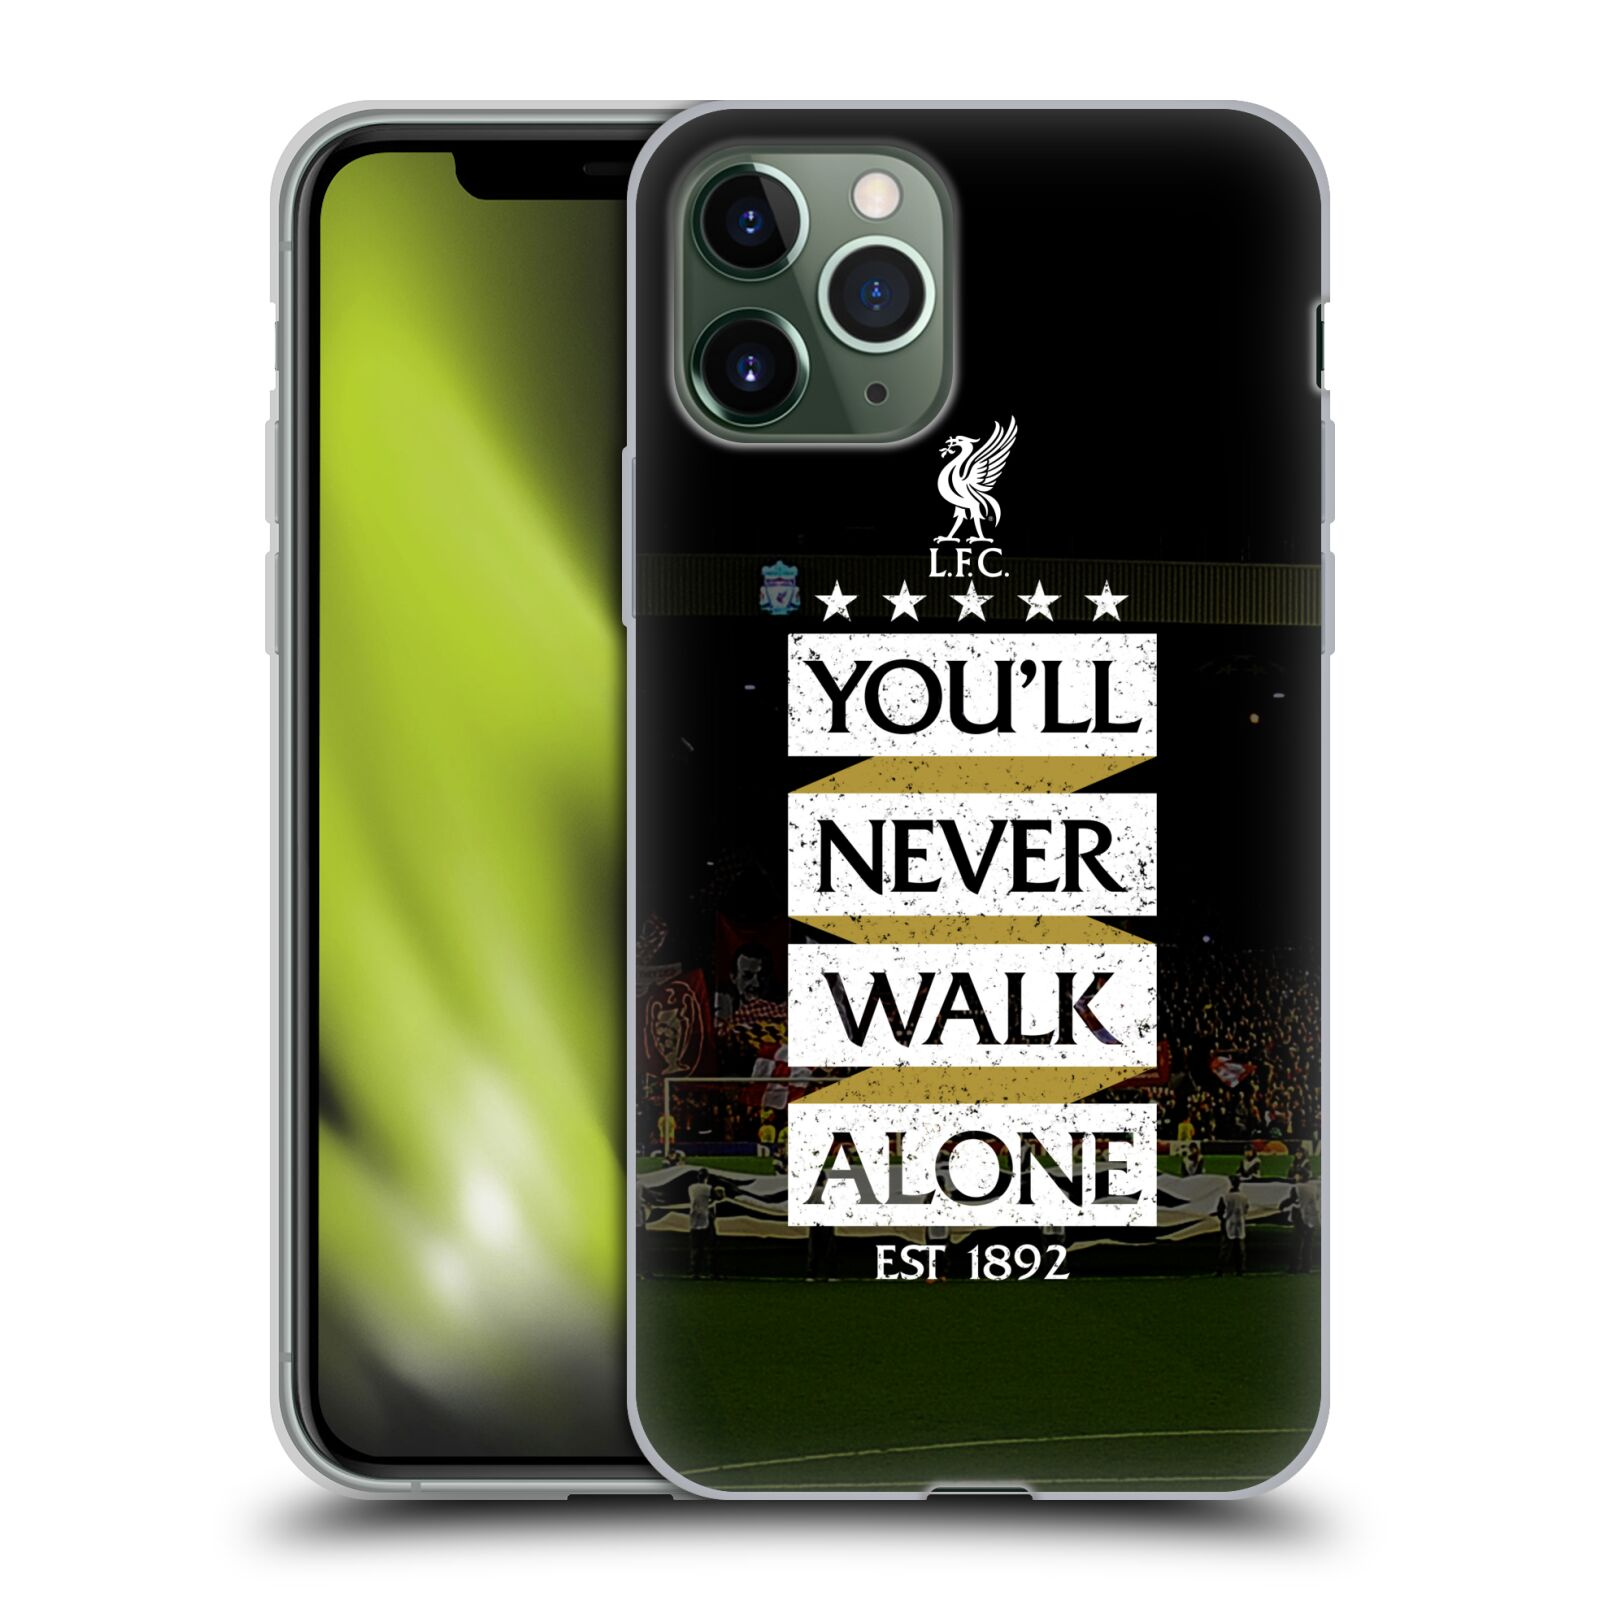 novy iphone 5 | Silikonové pouzdro na mobil Apple iPhone 11 Pro - Head Case - LFC You'll Never Walk Alone